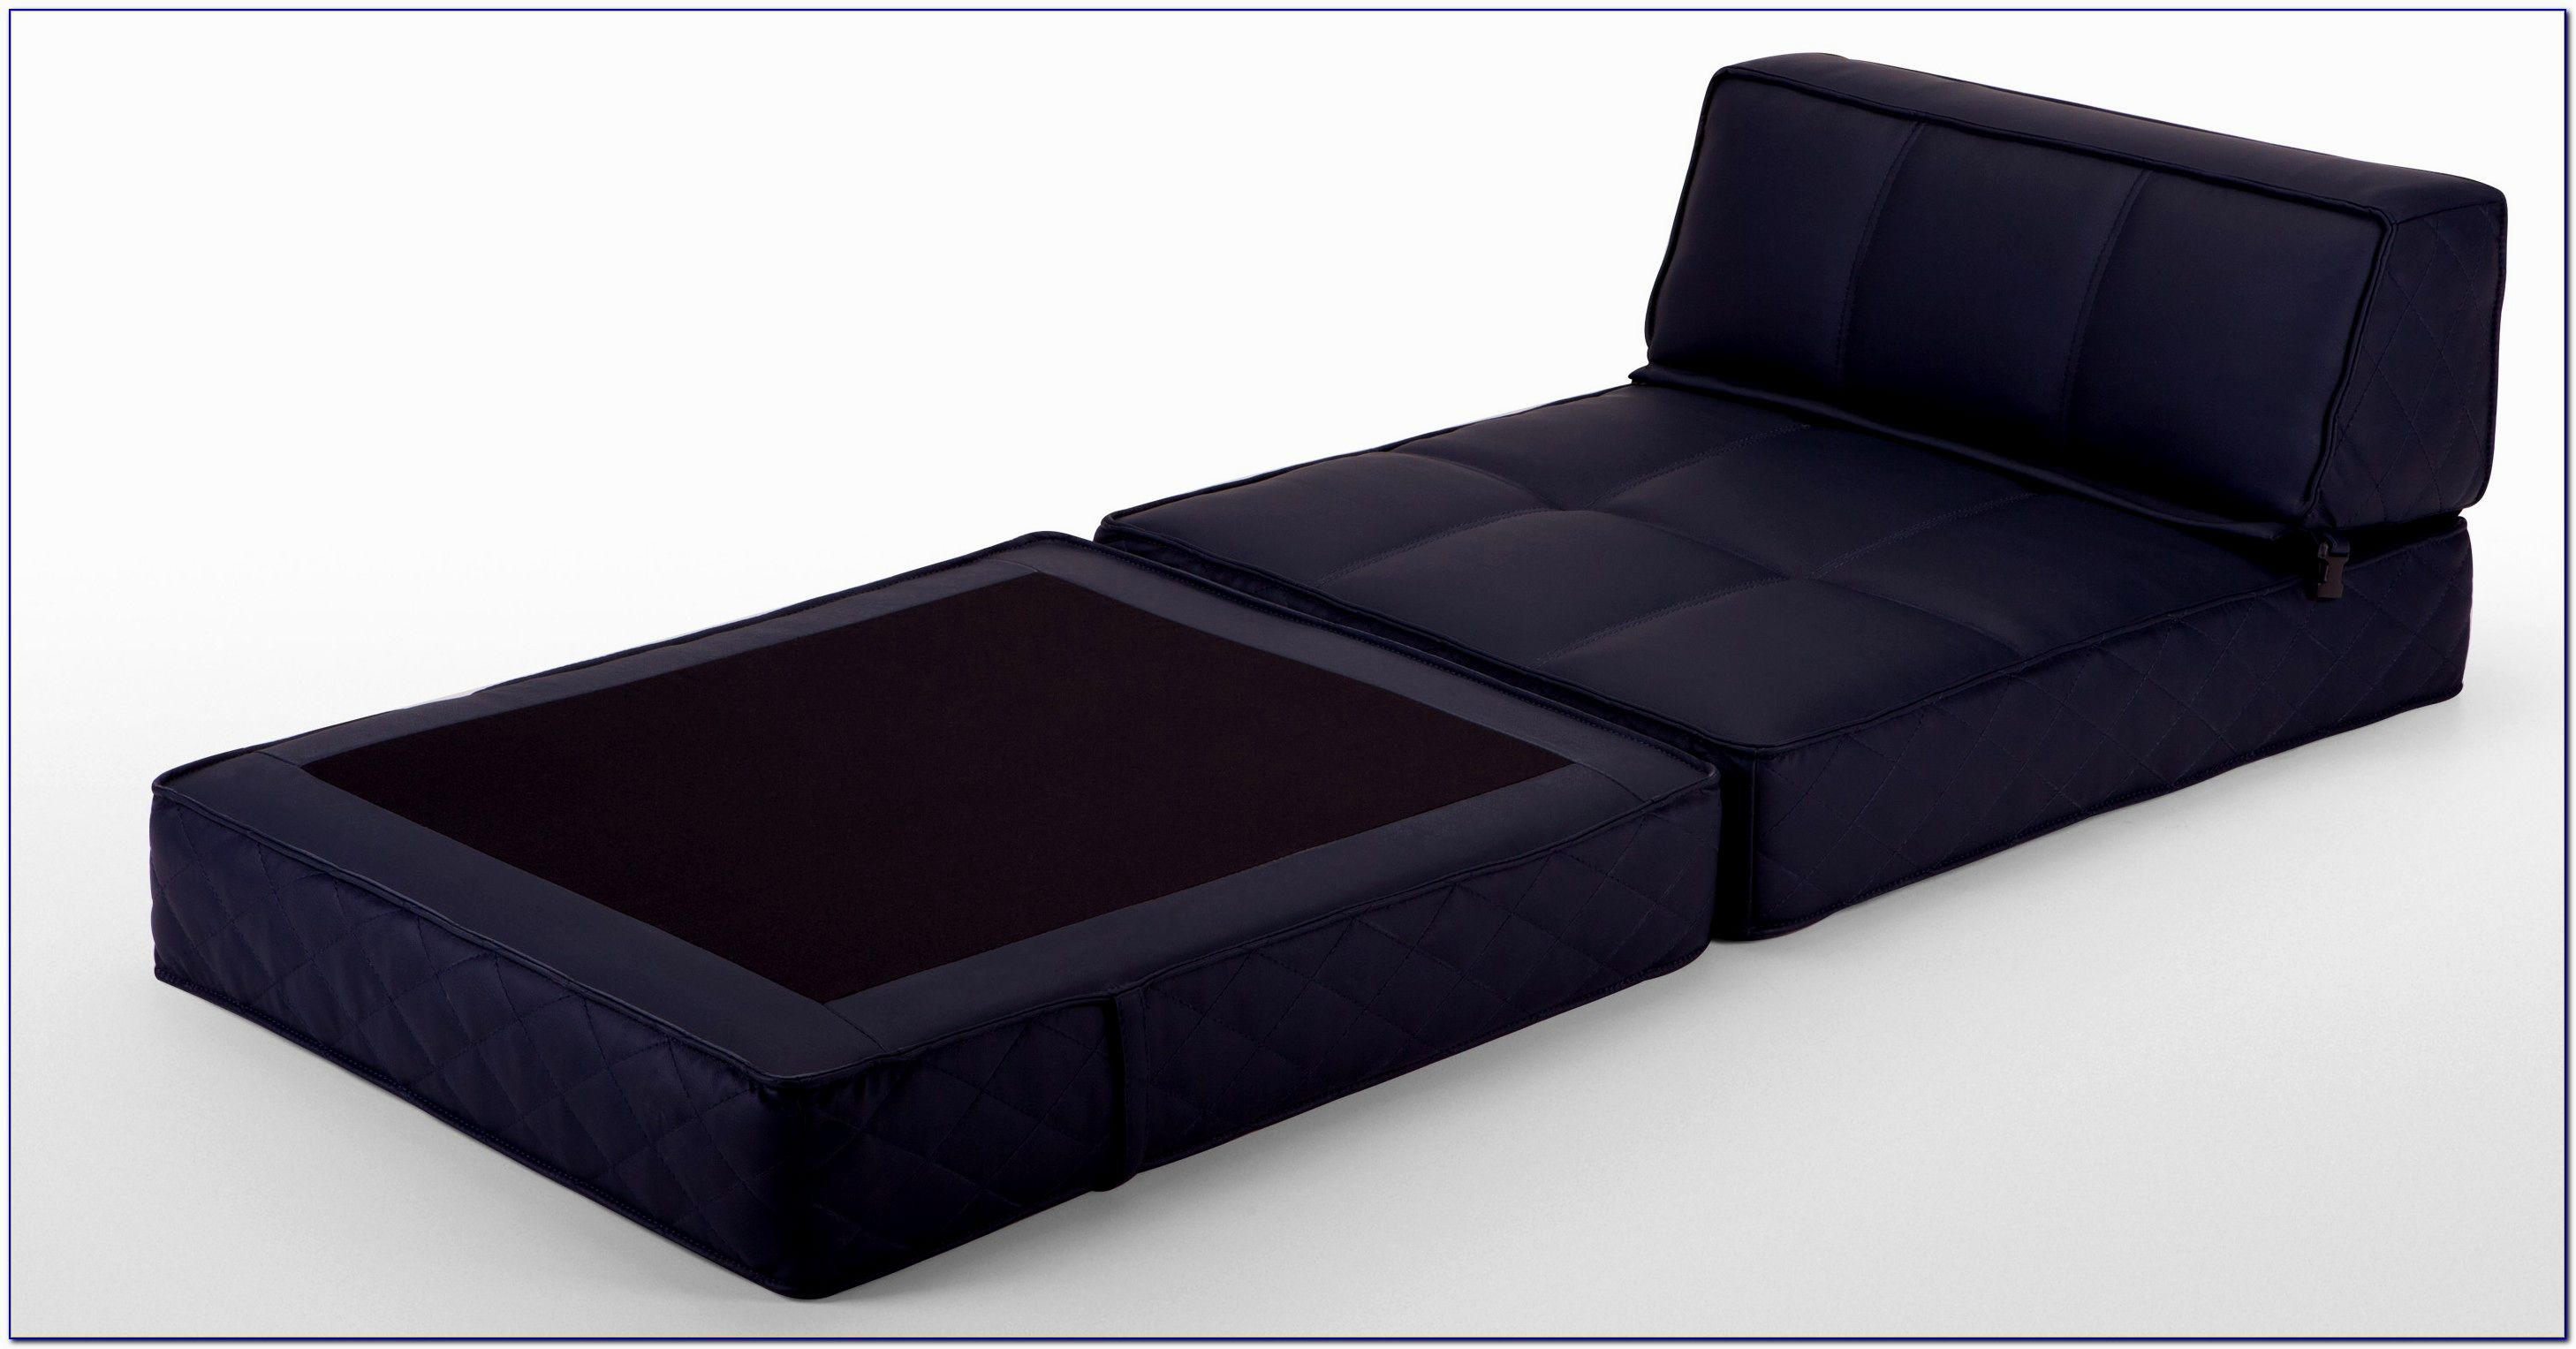 fascinating ikea sectional sofa pattern-Contemporary Ikea Sectional sofa Image